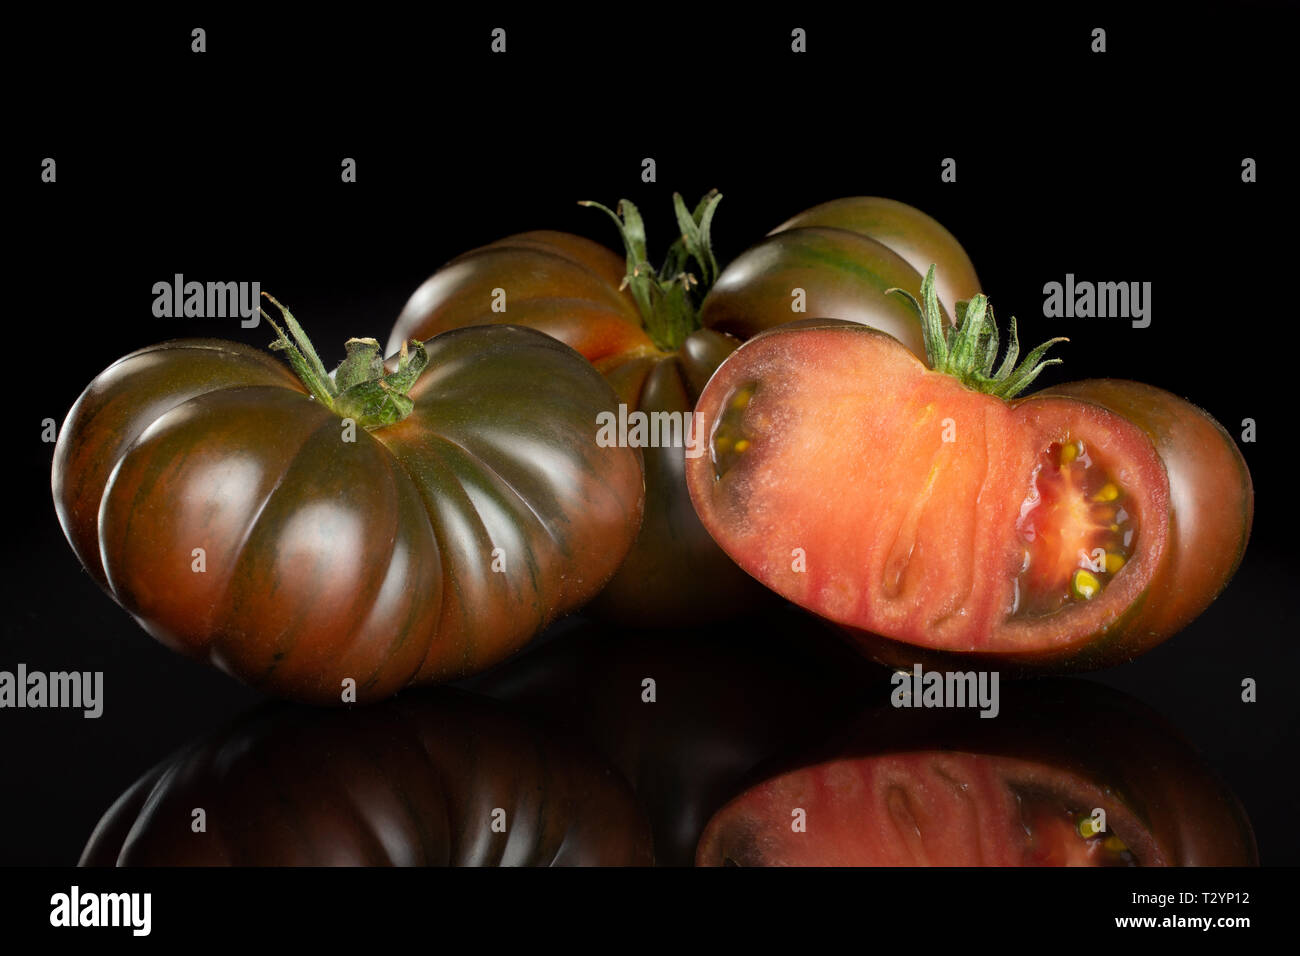 Group of two whole one half of fresh tomato primora isolated on black glass - Stock Image